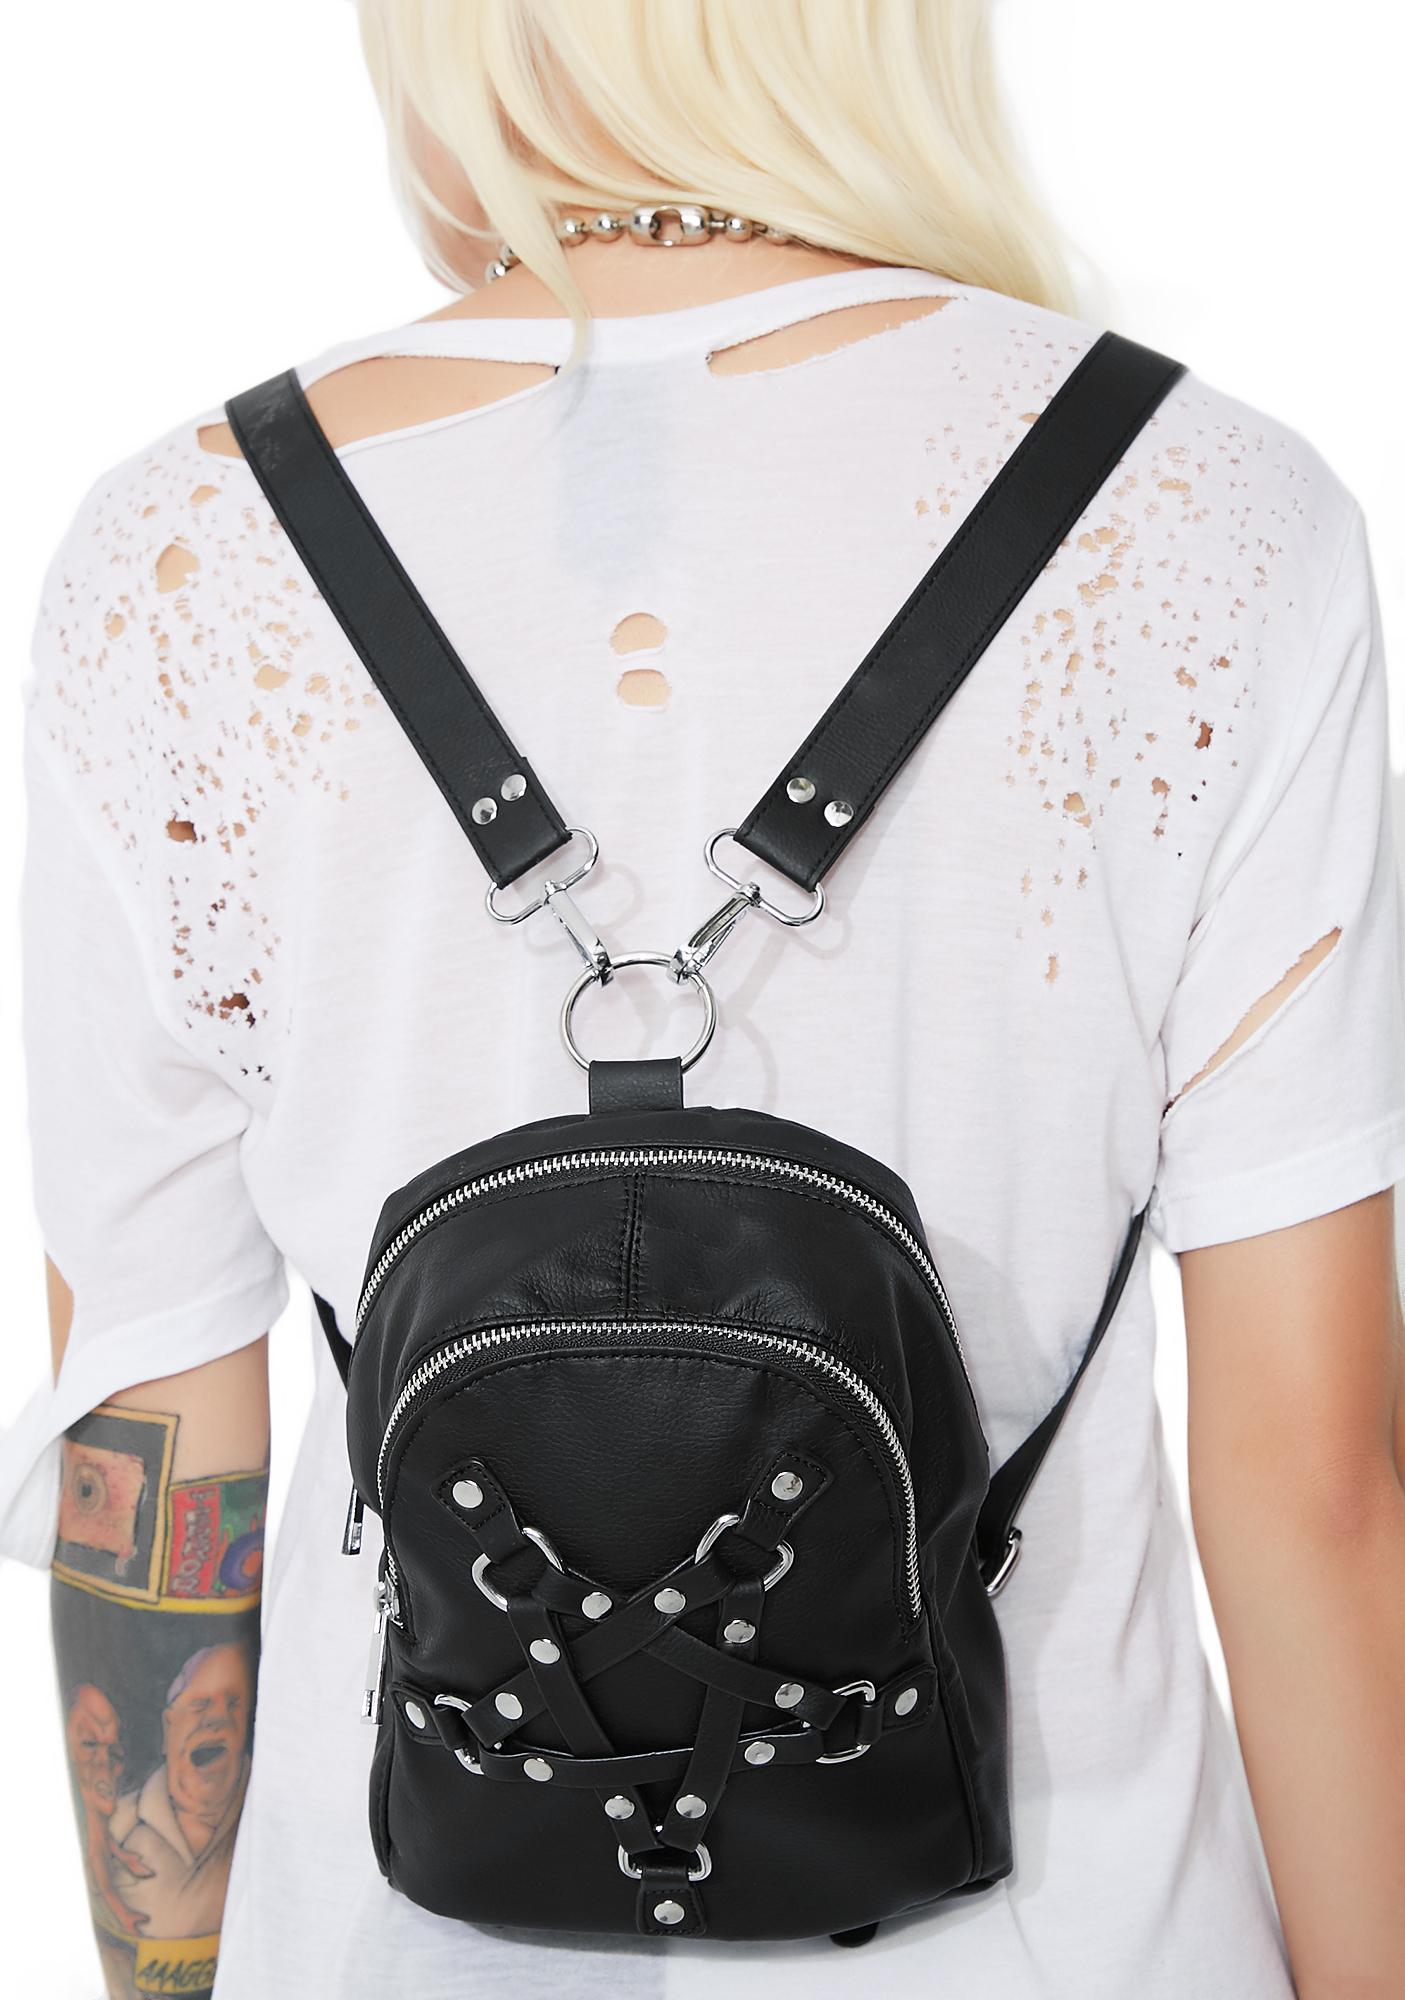 Current Mood With My Witches Pentagram Mini Backpack